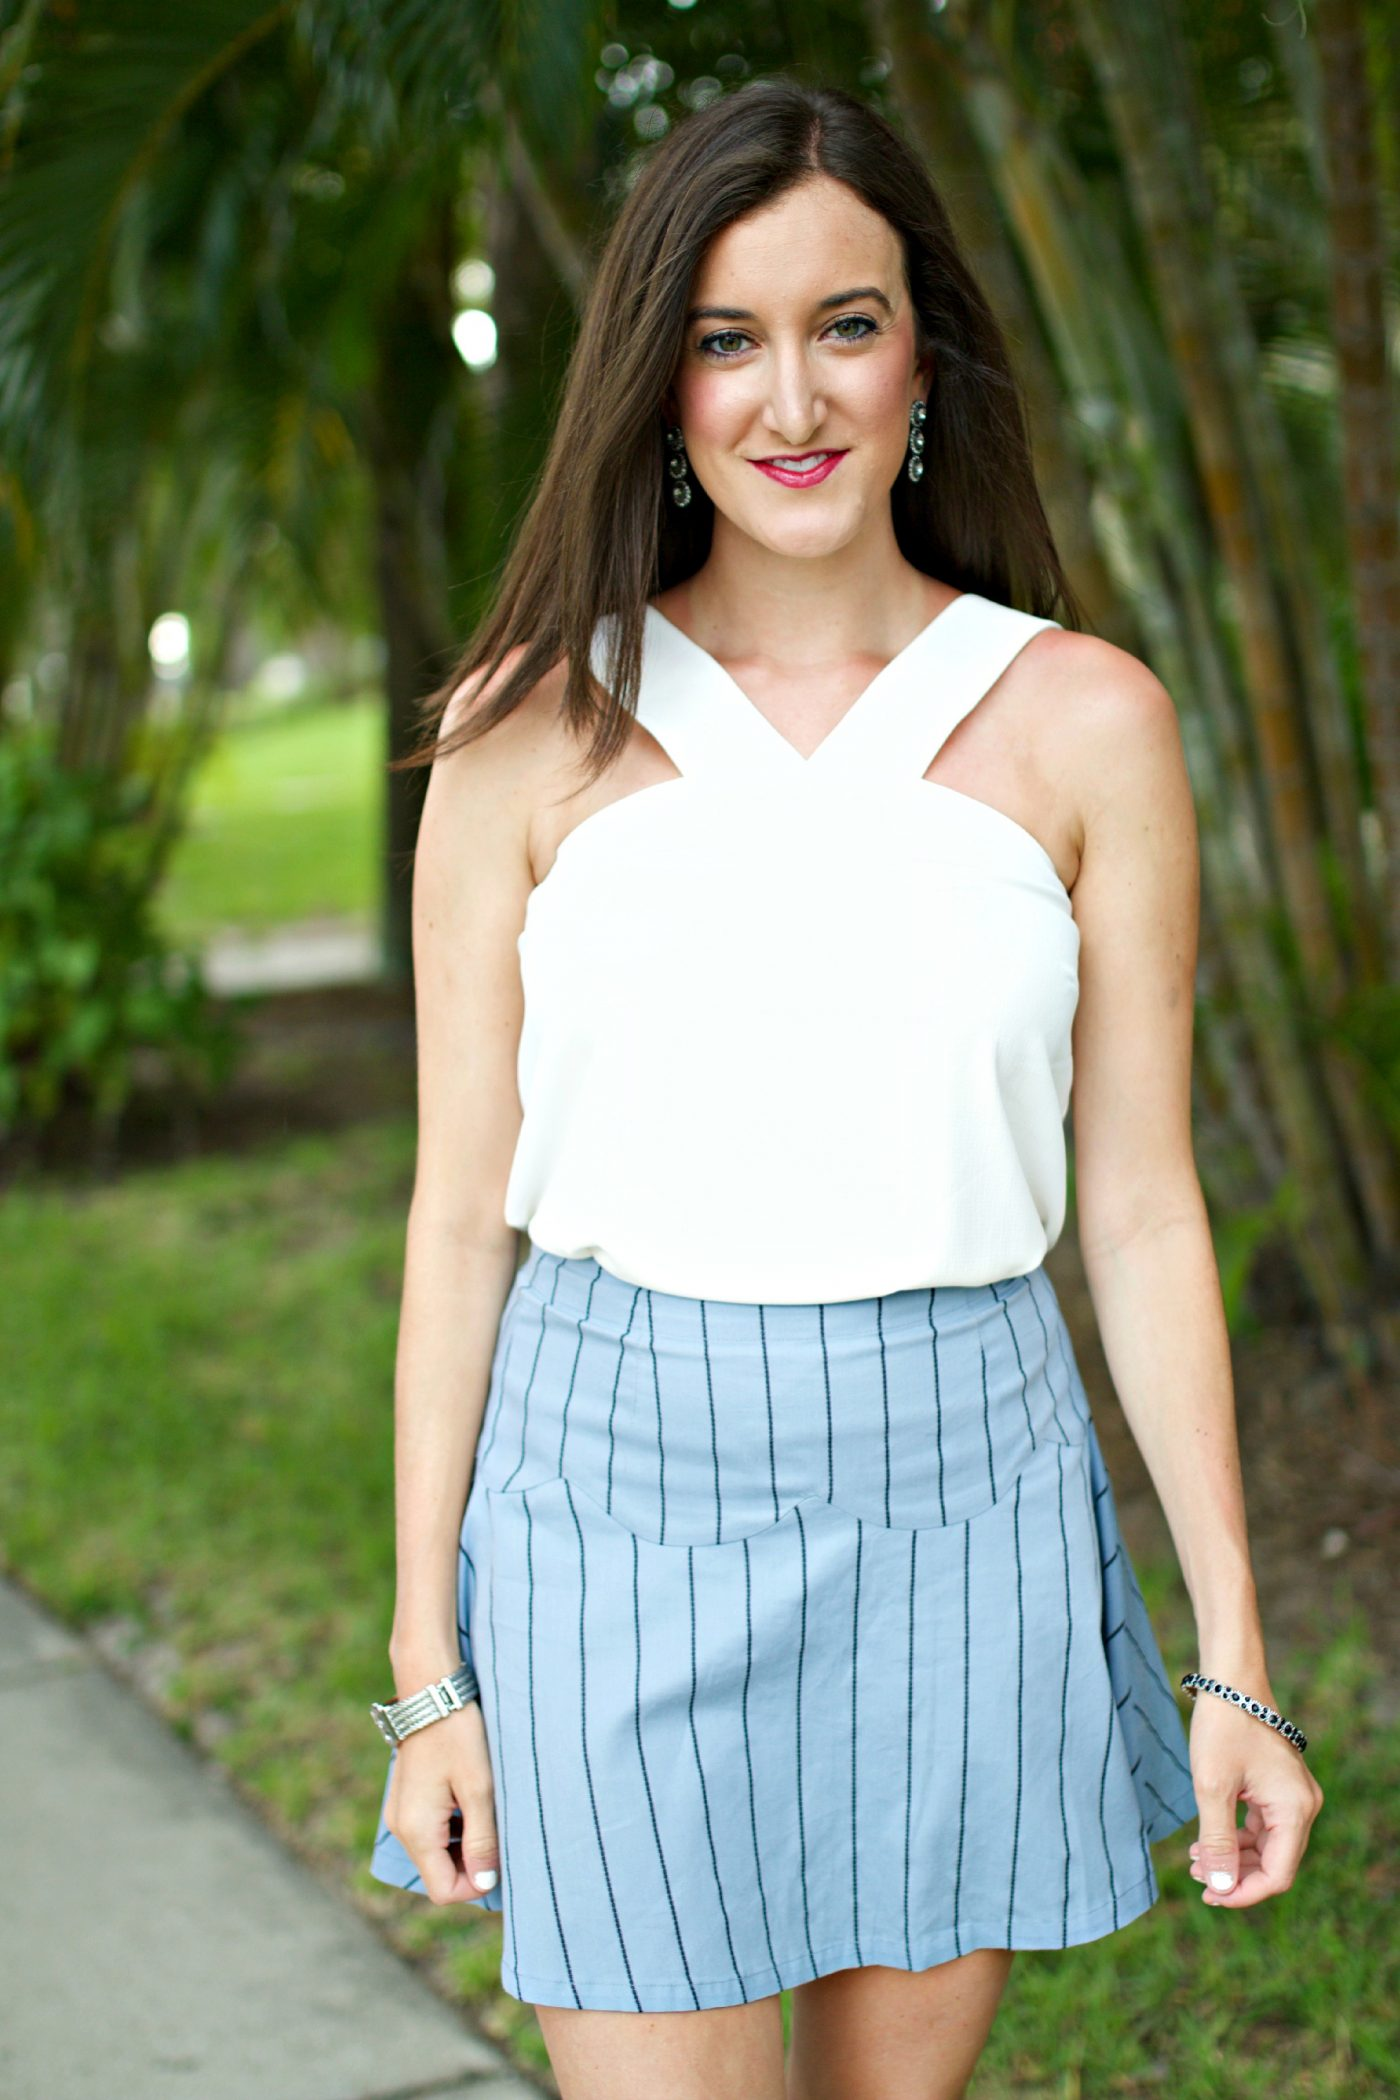 Blue Pinstripe Skirt with White Top